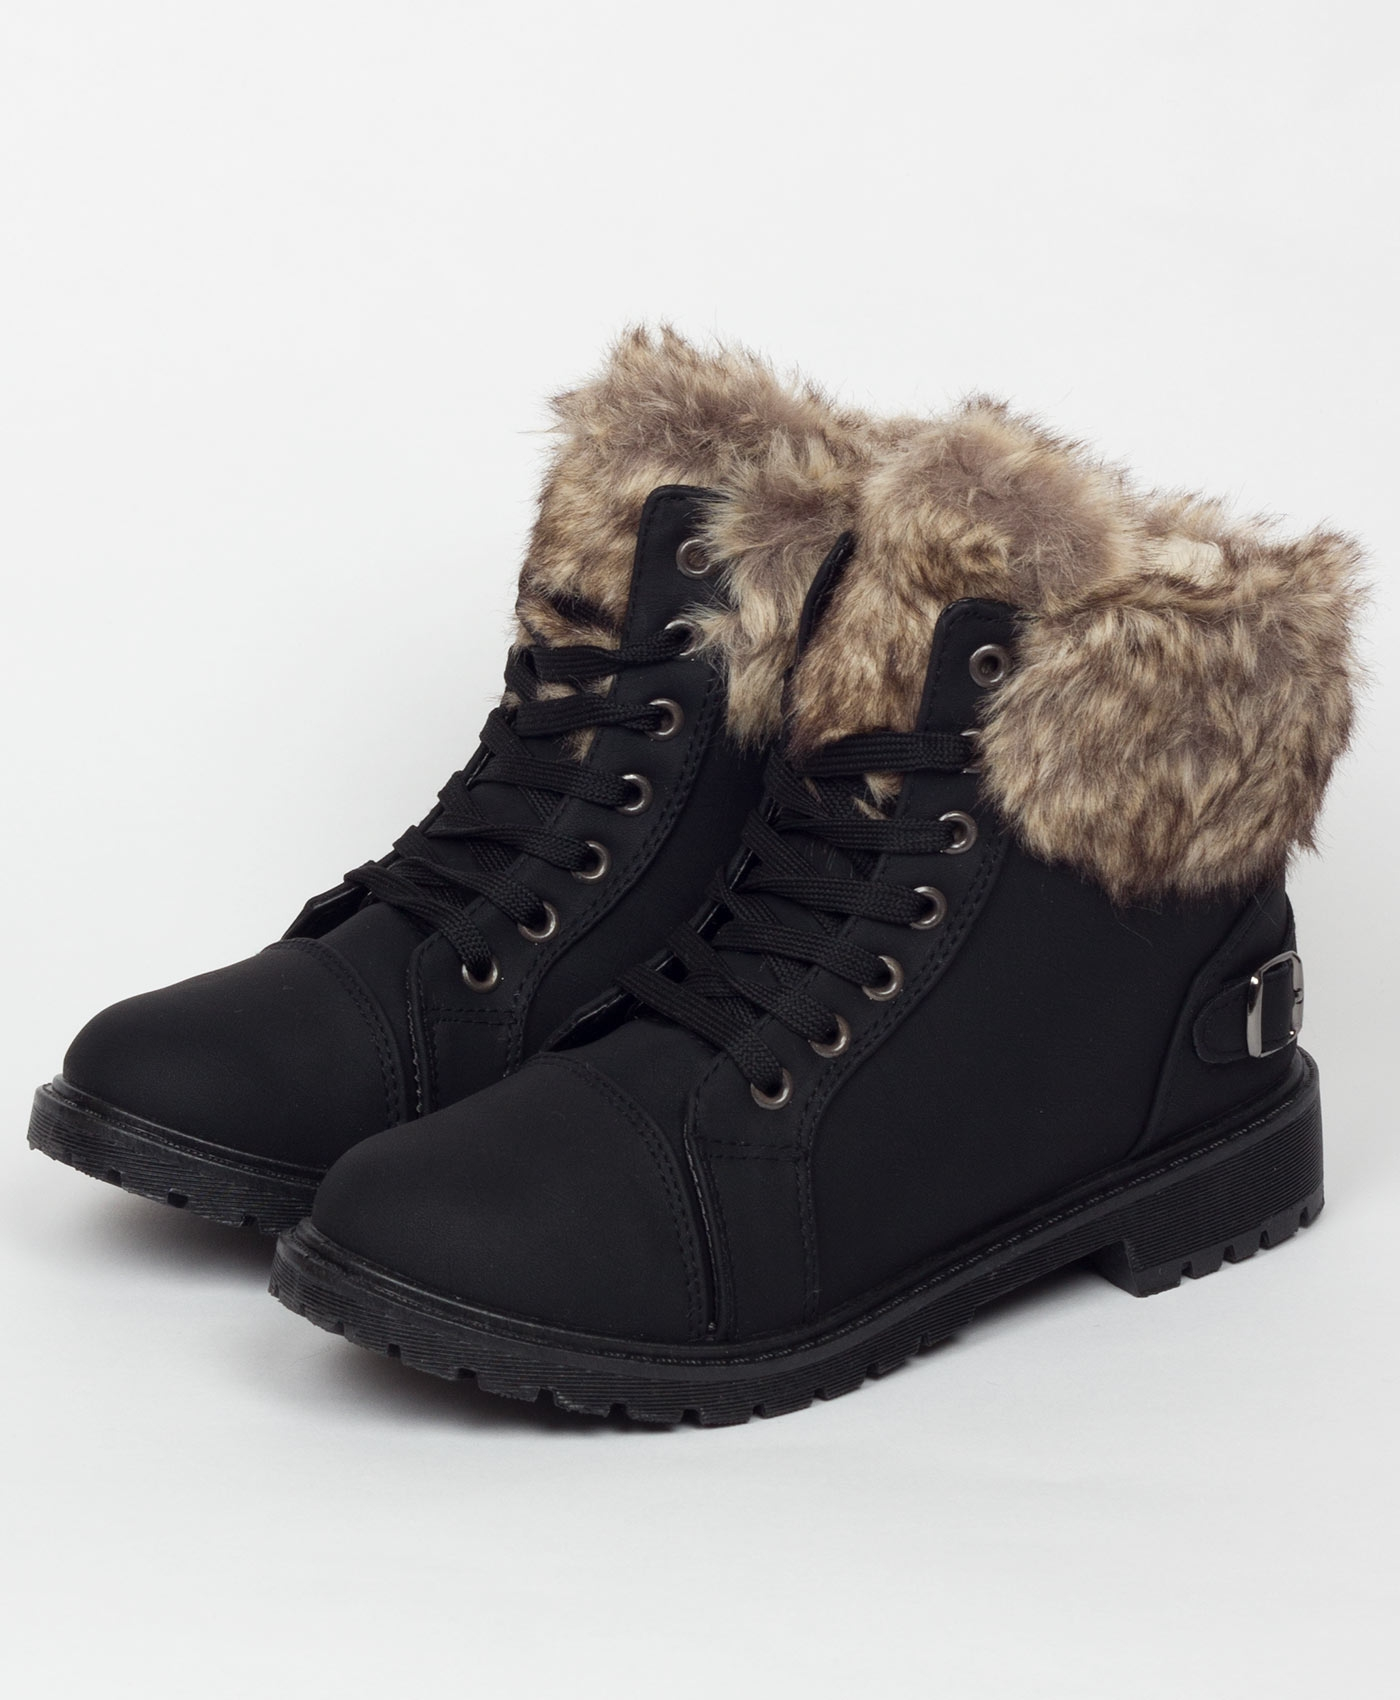 Black-29015-Sherpa-Lined-Fur-Detail-Buckle-Trim-Ankle-Boots-1